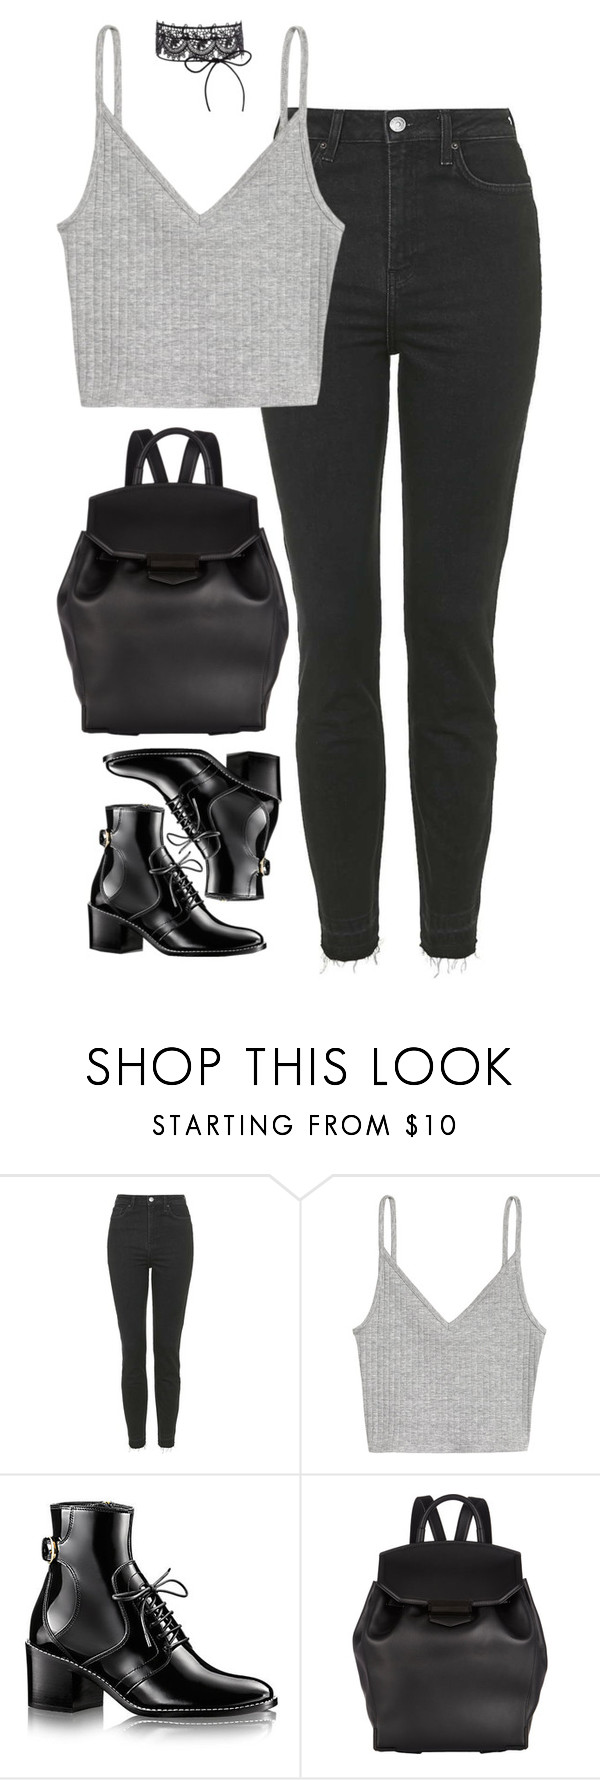 """""""Untitled #318"""" by lindsjayne ❤ liked on Polyvore featuring Topshop and Alexander Wang"""